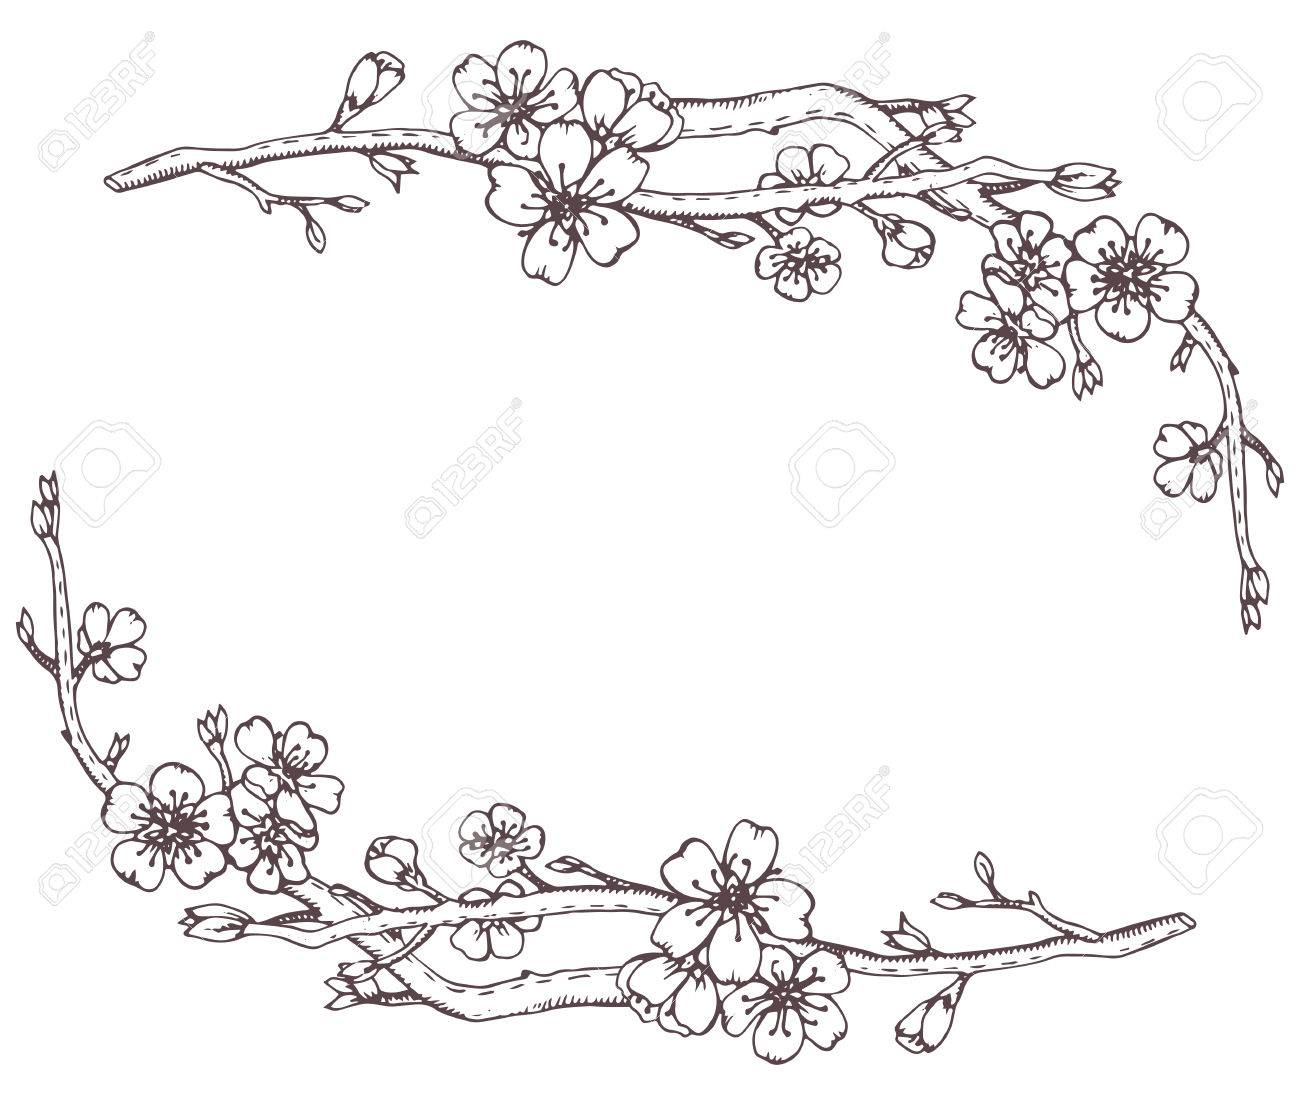 Vector frame with hand drawn graphic branches of a blossoming cherry tree (sakura) - 55733890